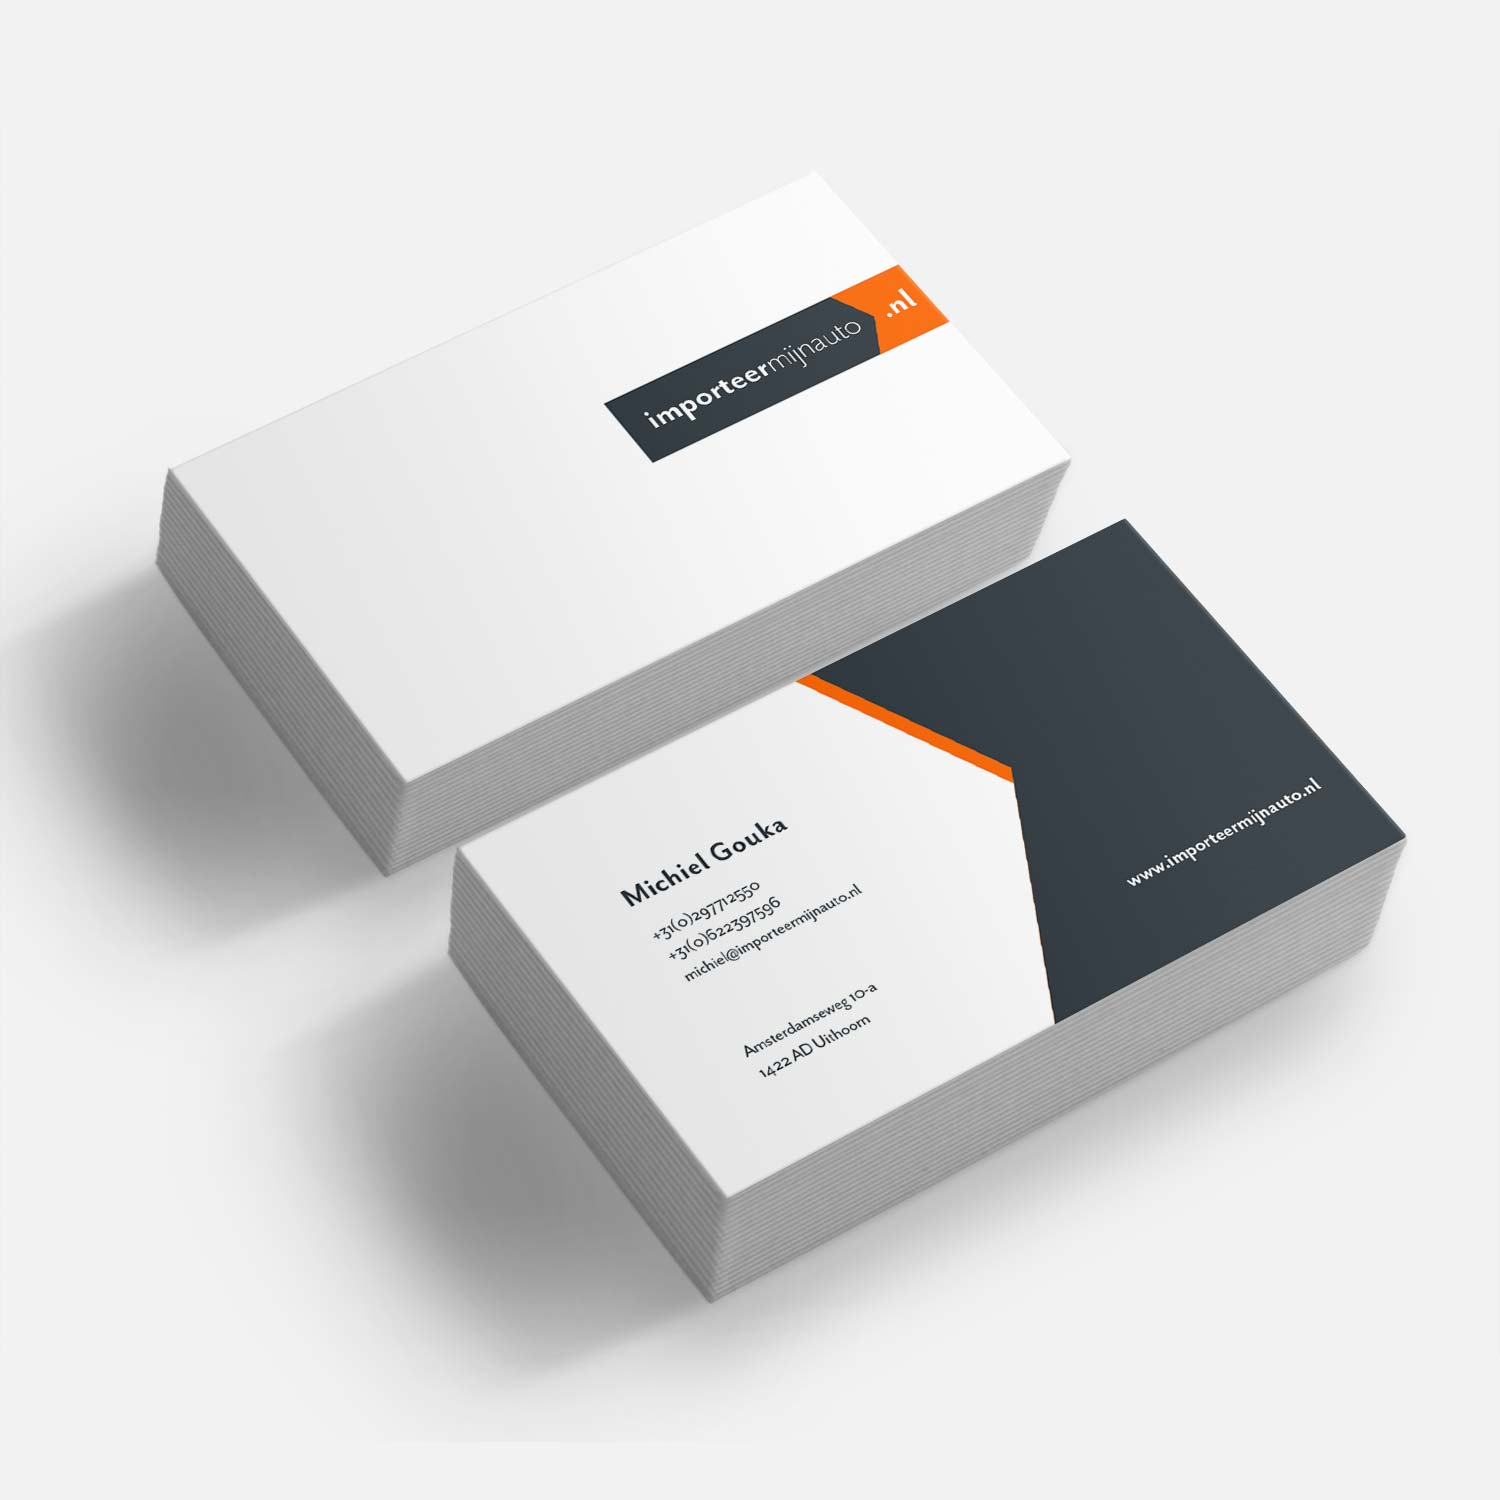 Importeermijnauto.nl Business Cards